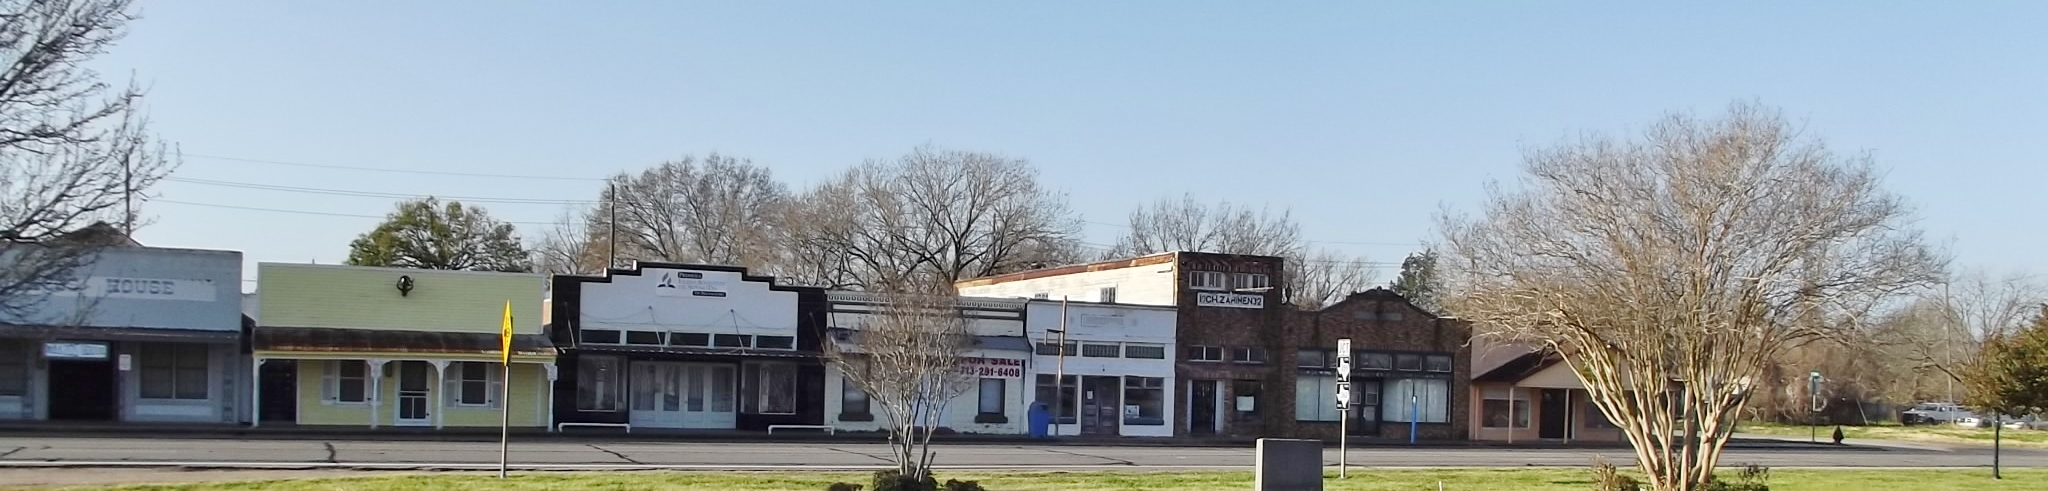 Brookshire Downtown (west half